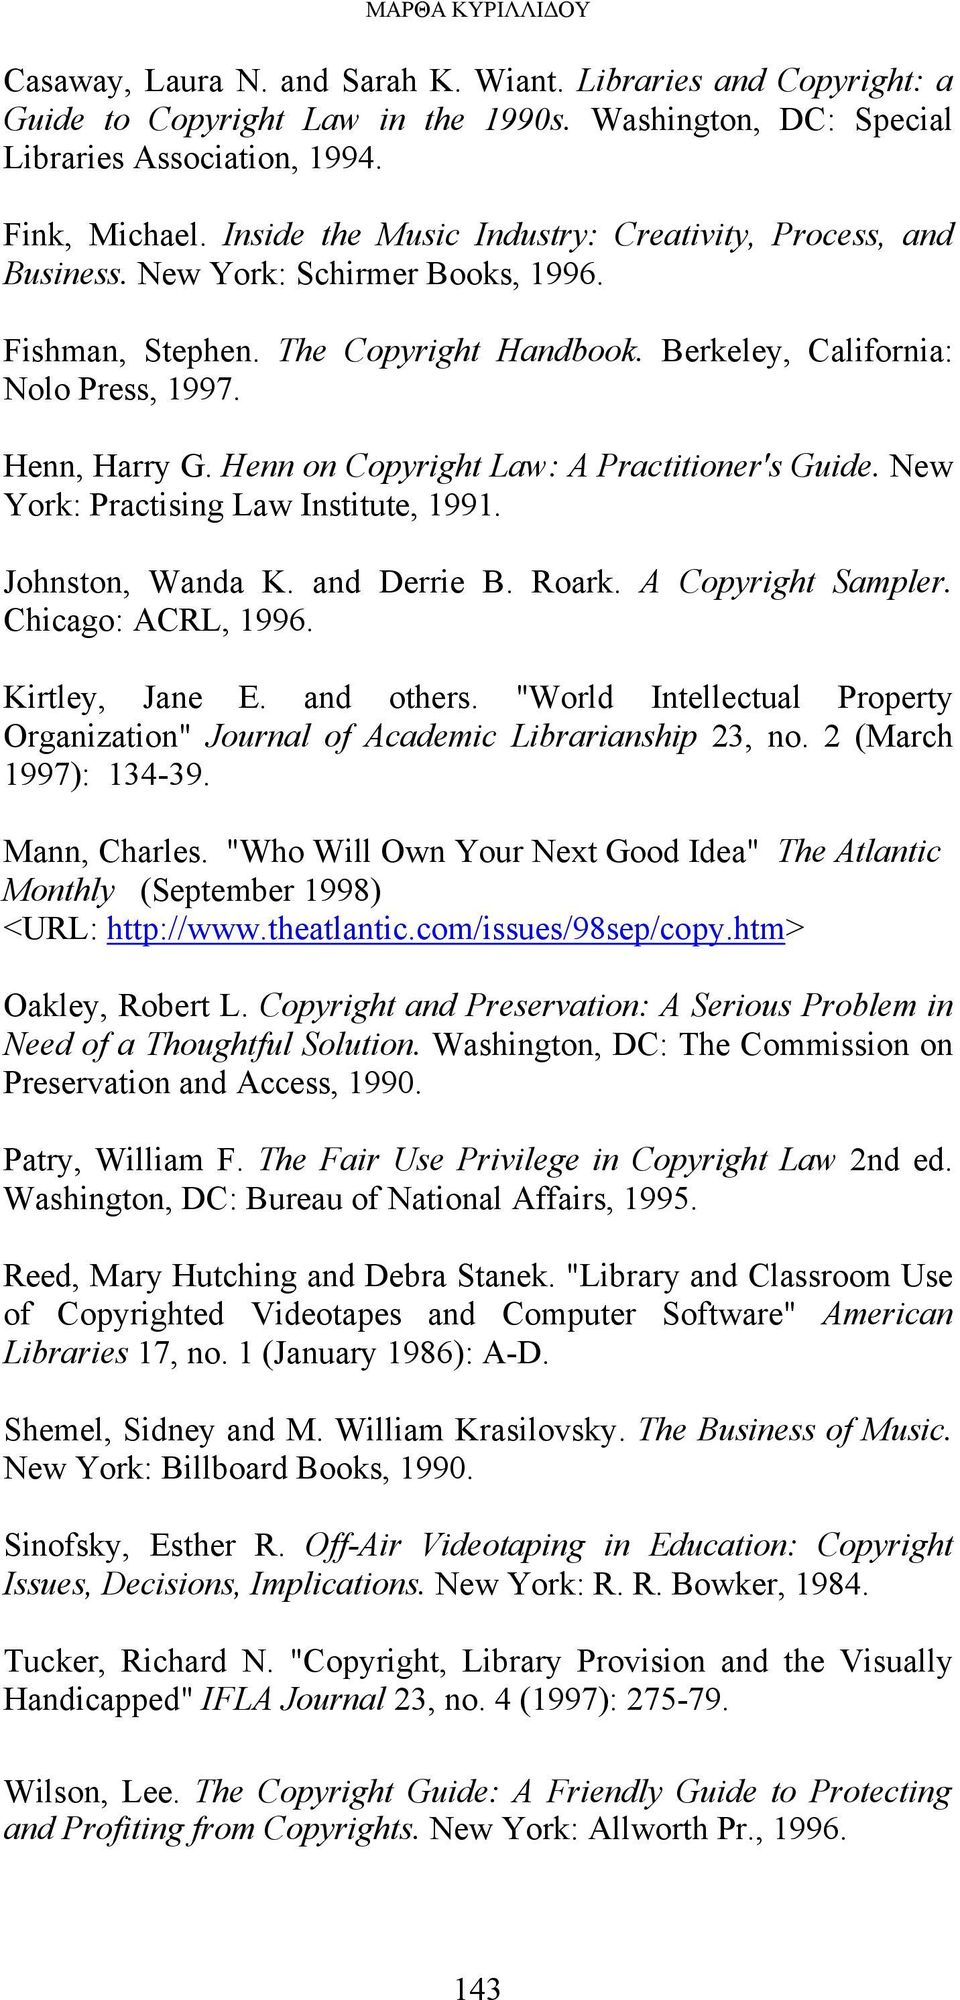 Henn on Copyright Law: A Practitioner's Guide. New York: Practising Law Institute, 1991. Johnston, Wanda K. and Derrie B. Roark. A Copyright Sampler. Chicago: ACRL, 1996. Kirtley, Jane E. and others.